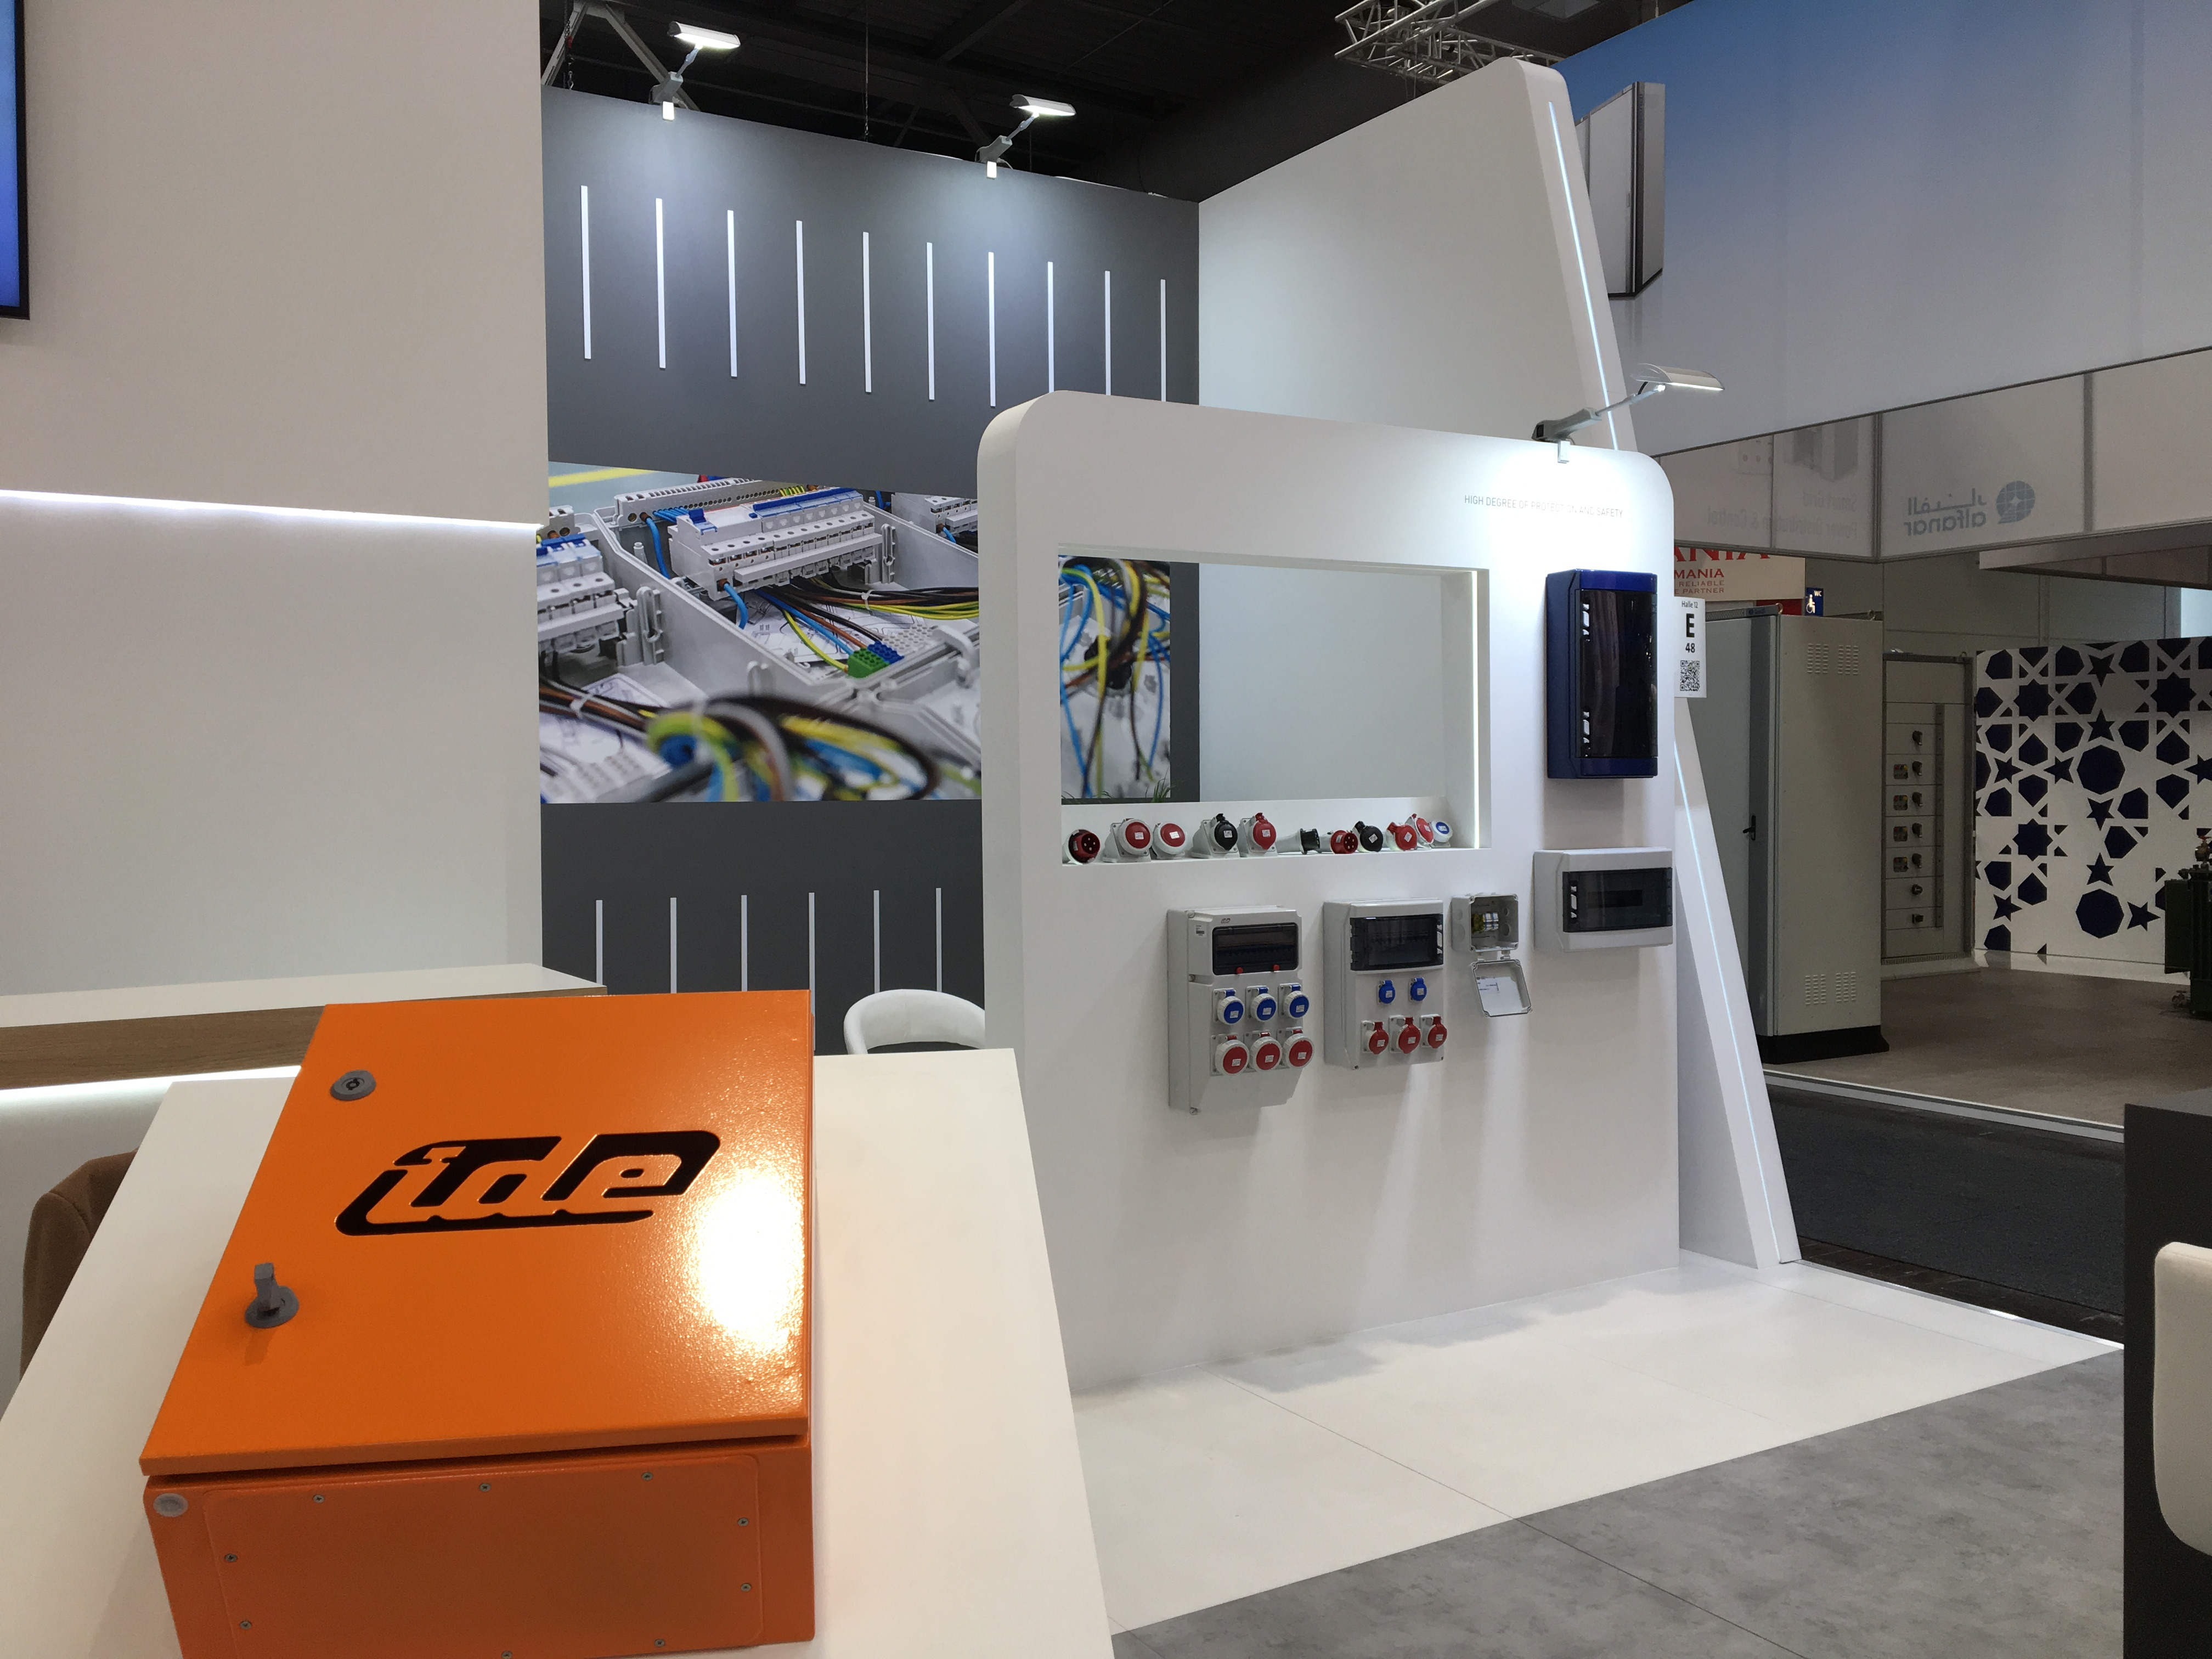 stand-ide-feria-hannover-messe-2019-03